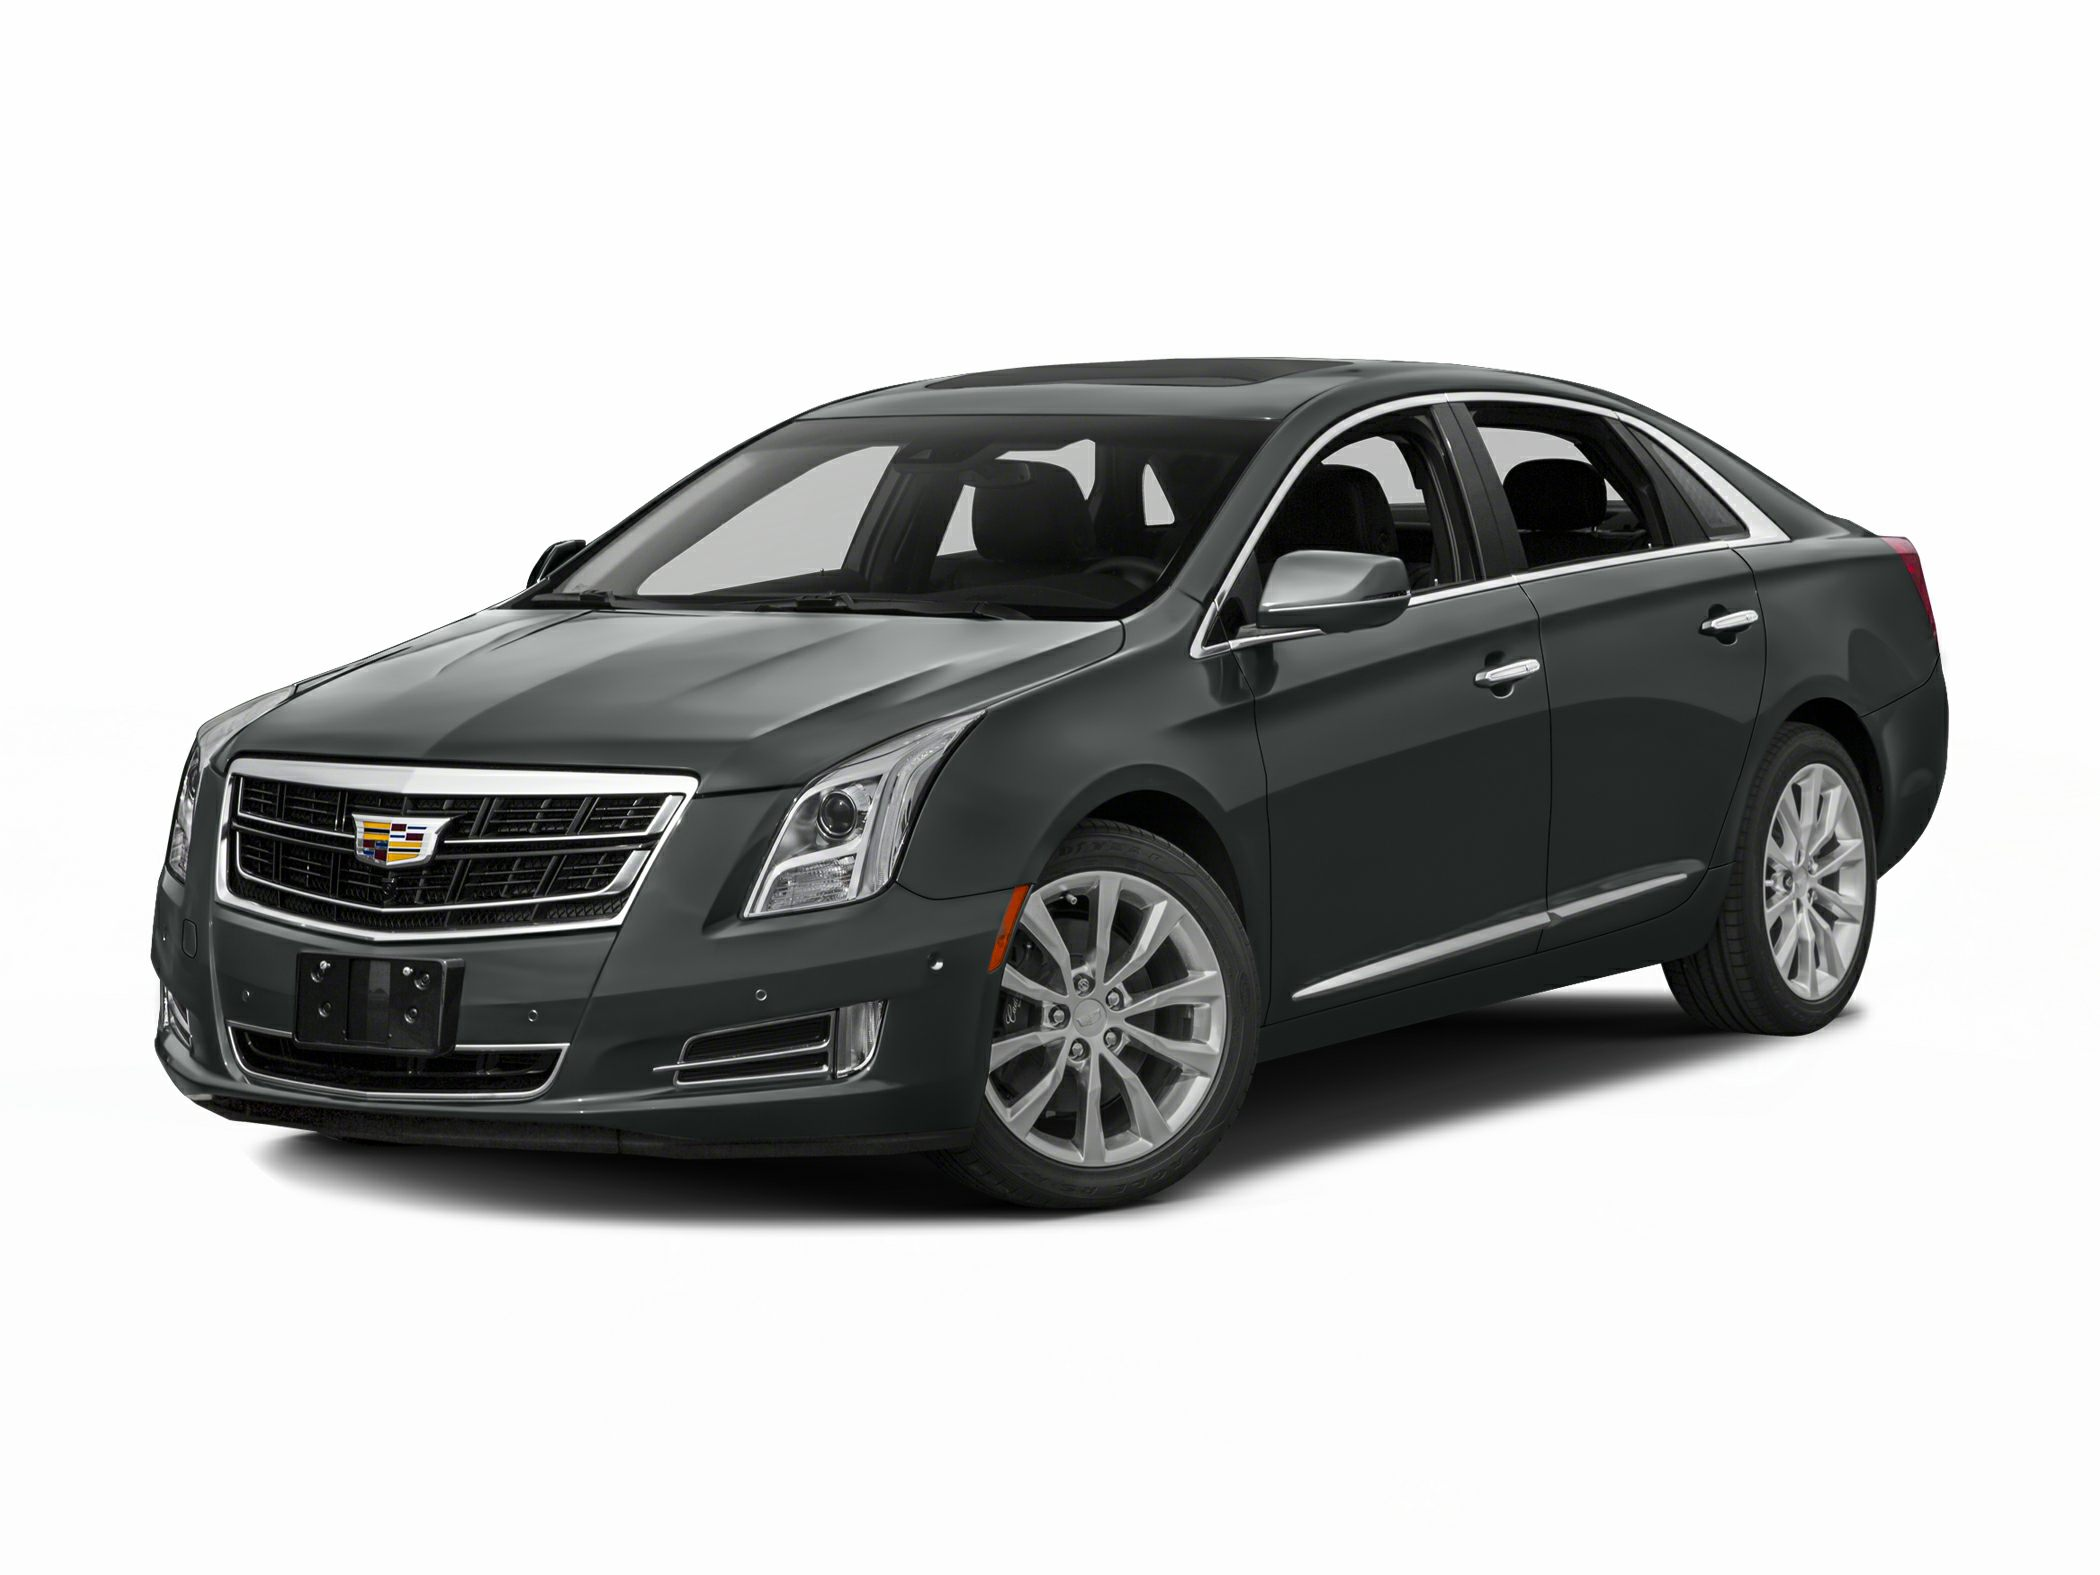 2017 Cadillac XTS W30 Coachbuilder Stretch Livery 4dr Front wheel